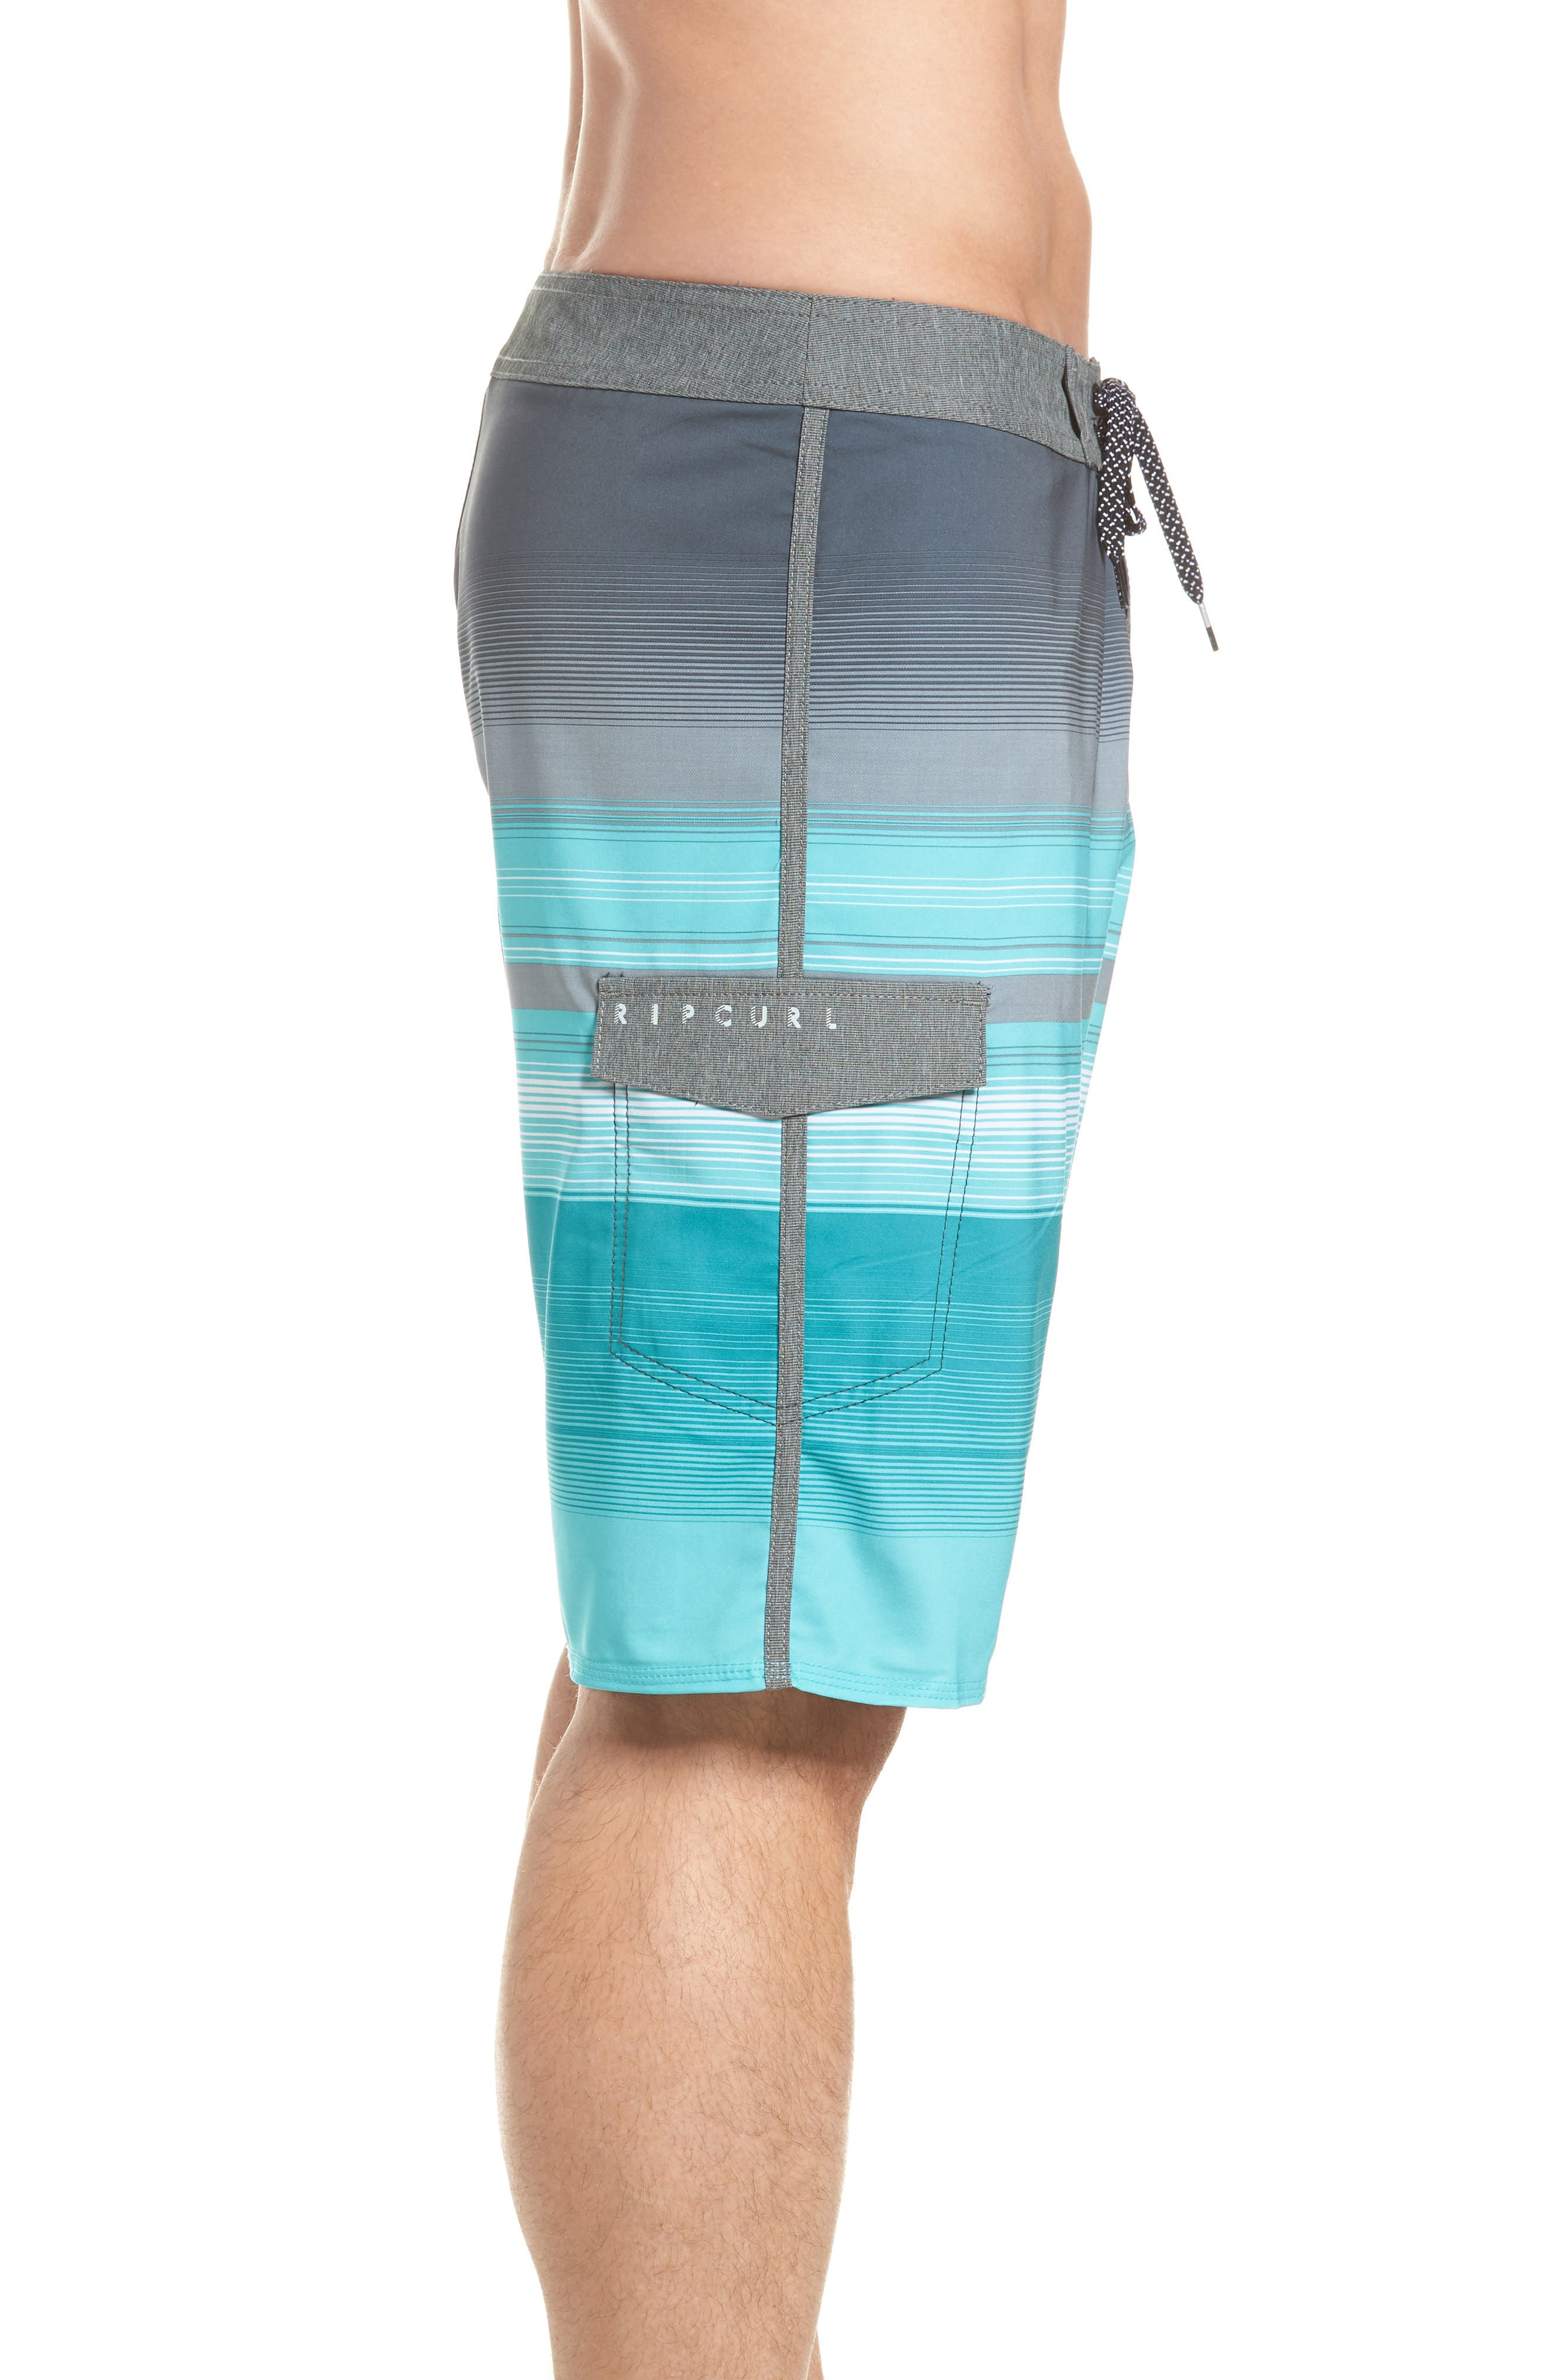 Mirage Accelerate Board Shorts,                             Alternate thumbnail 3, color,                             443